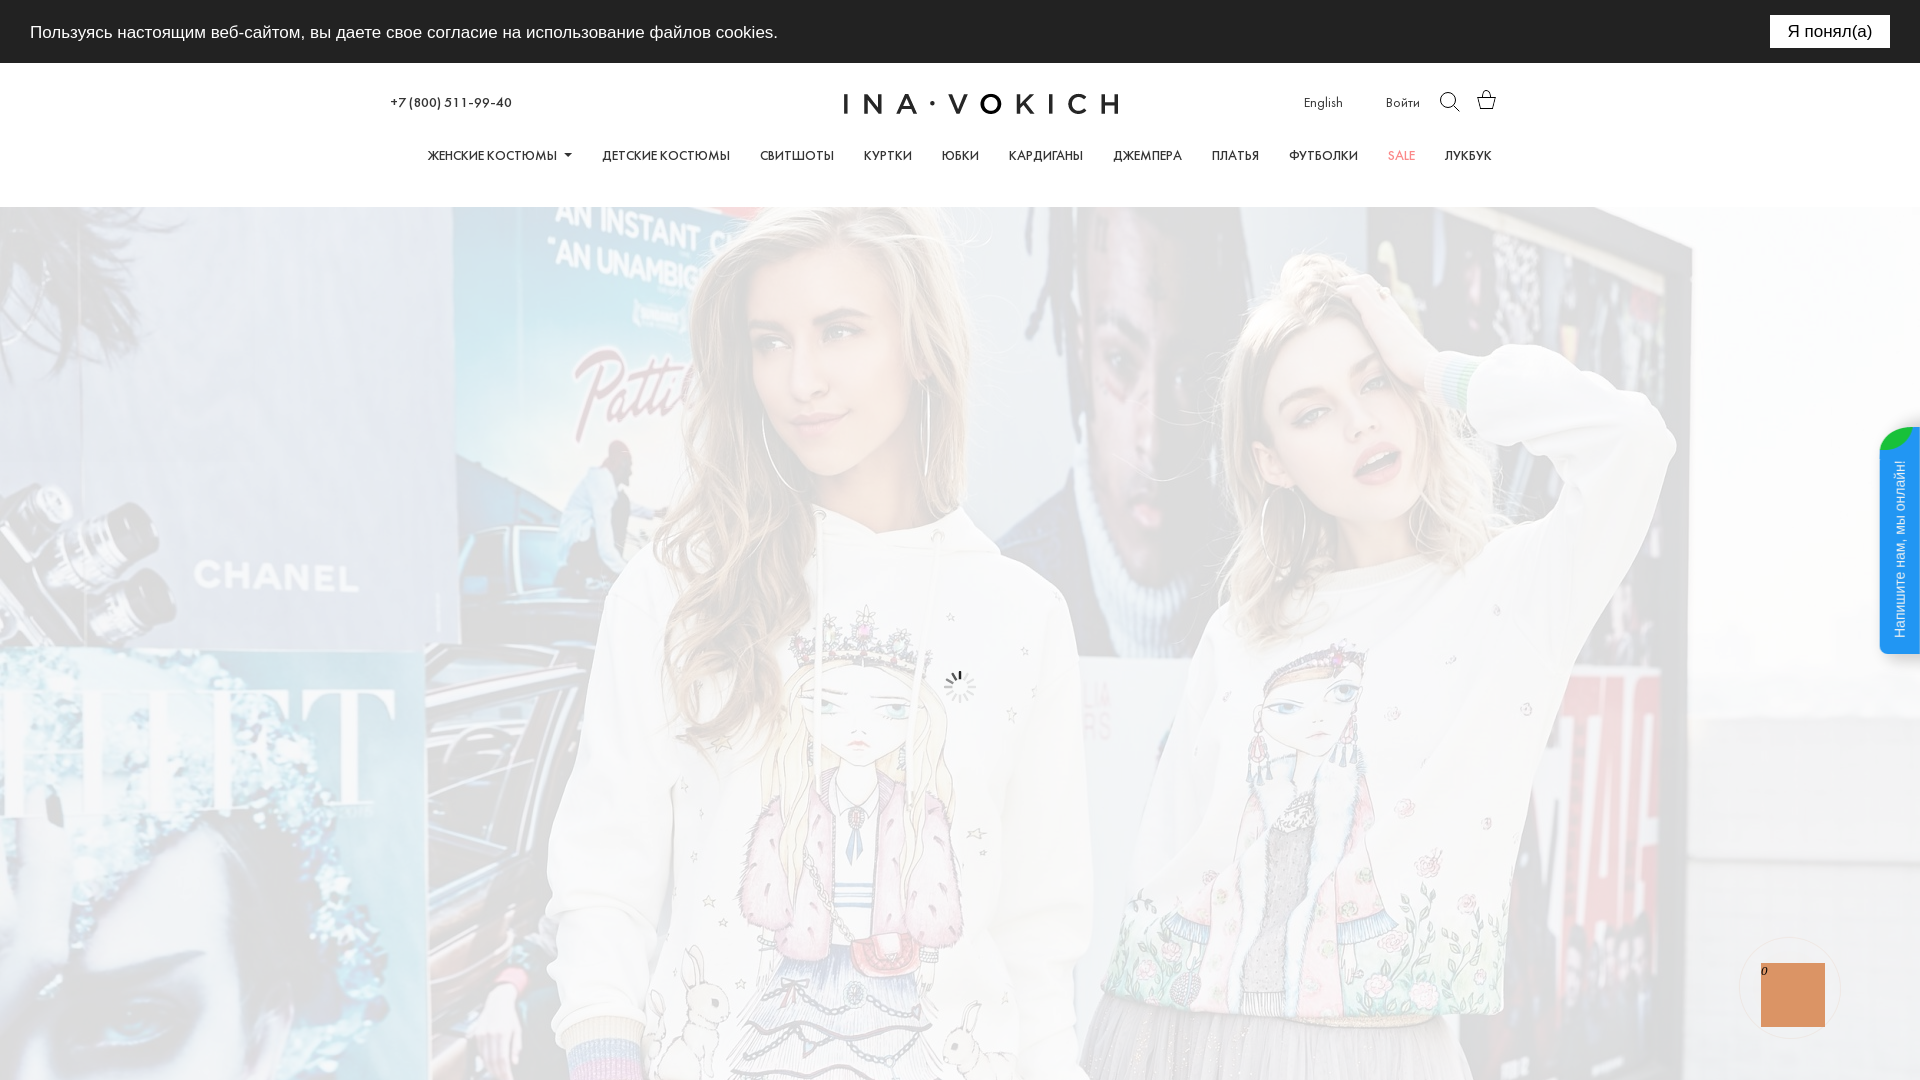 inavokich website